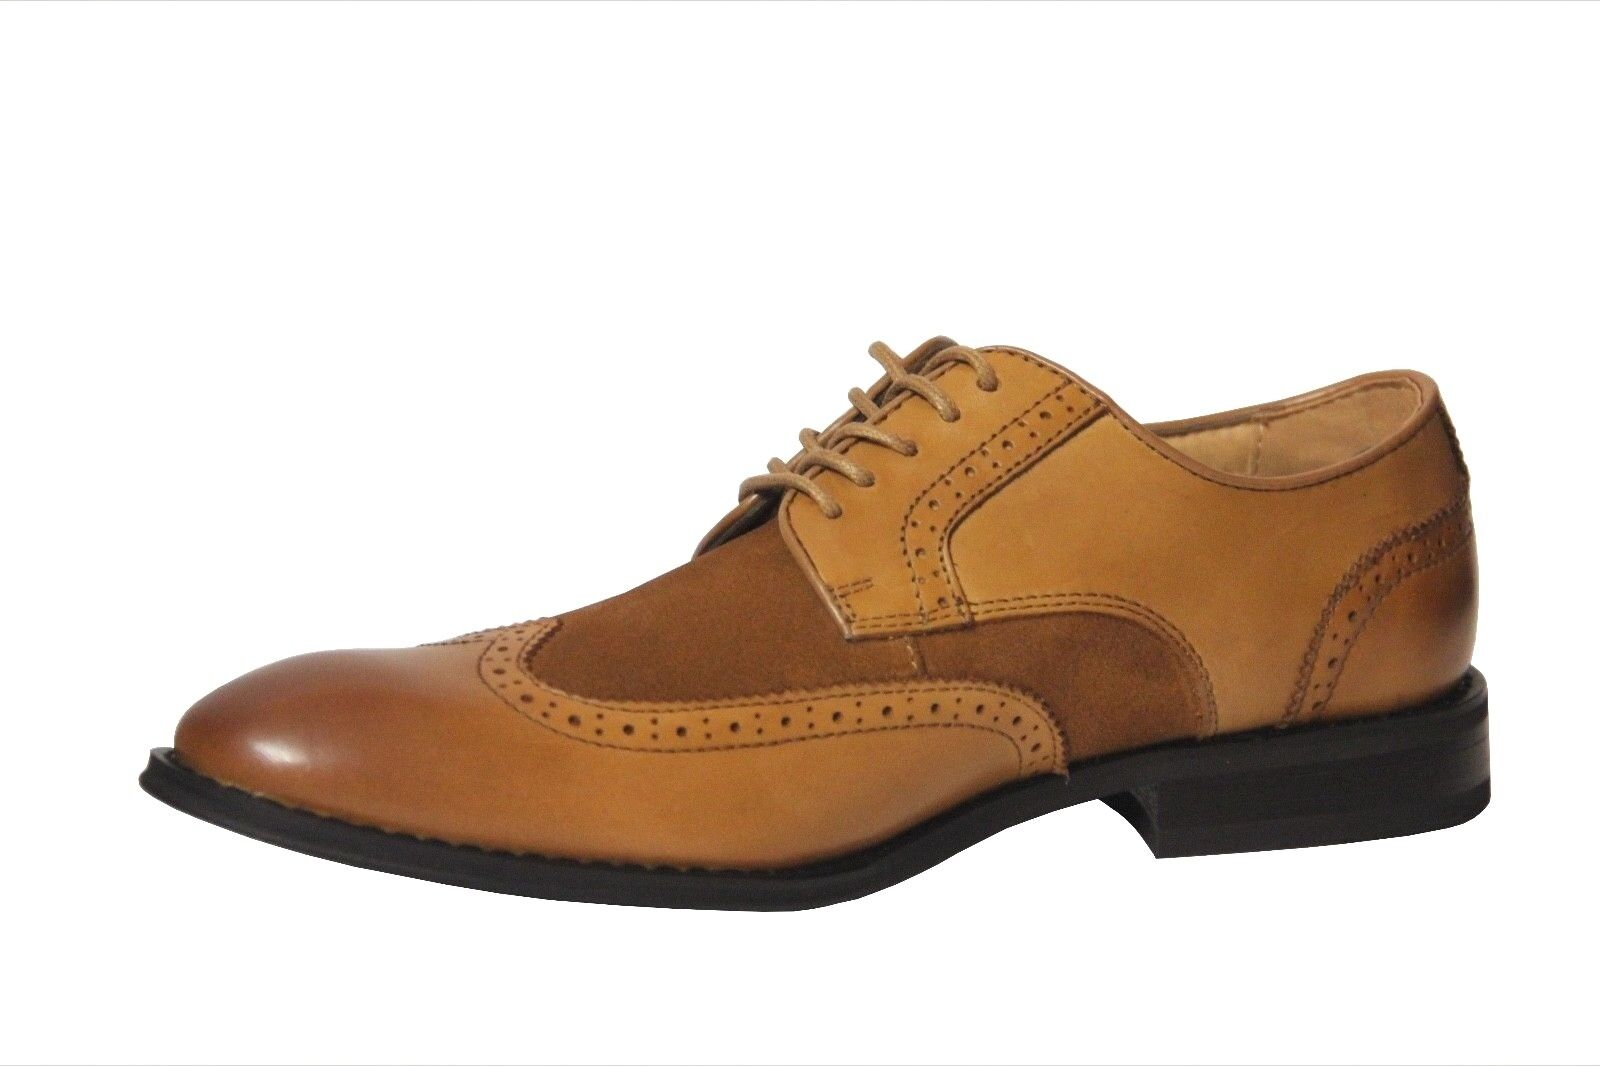 La Milano Men's Tan Leather/Suede Wing Tip Dress Shoes A11408 1